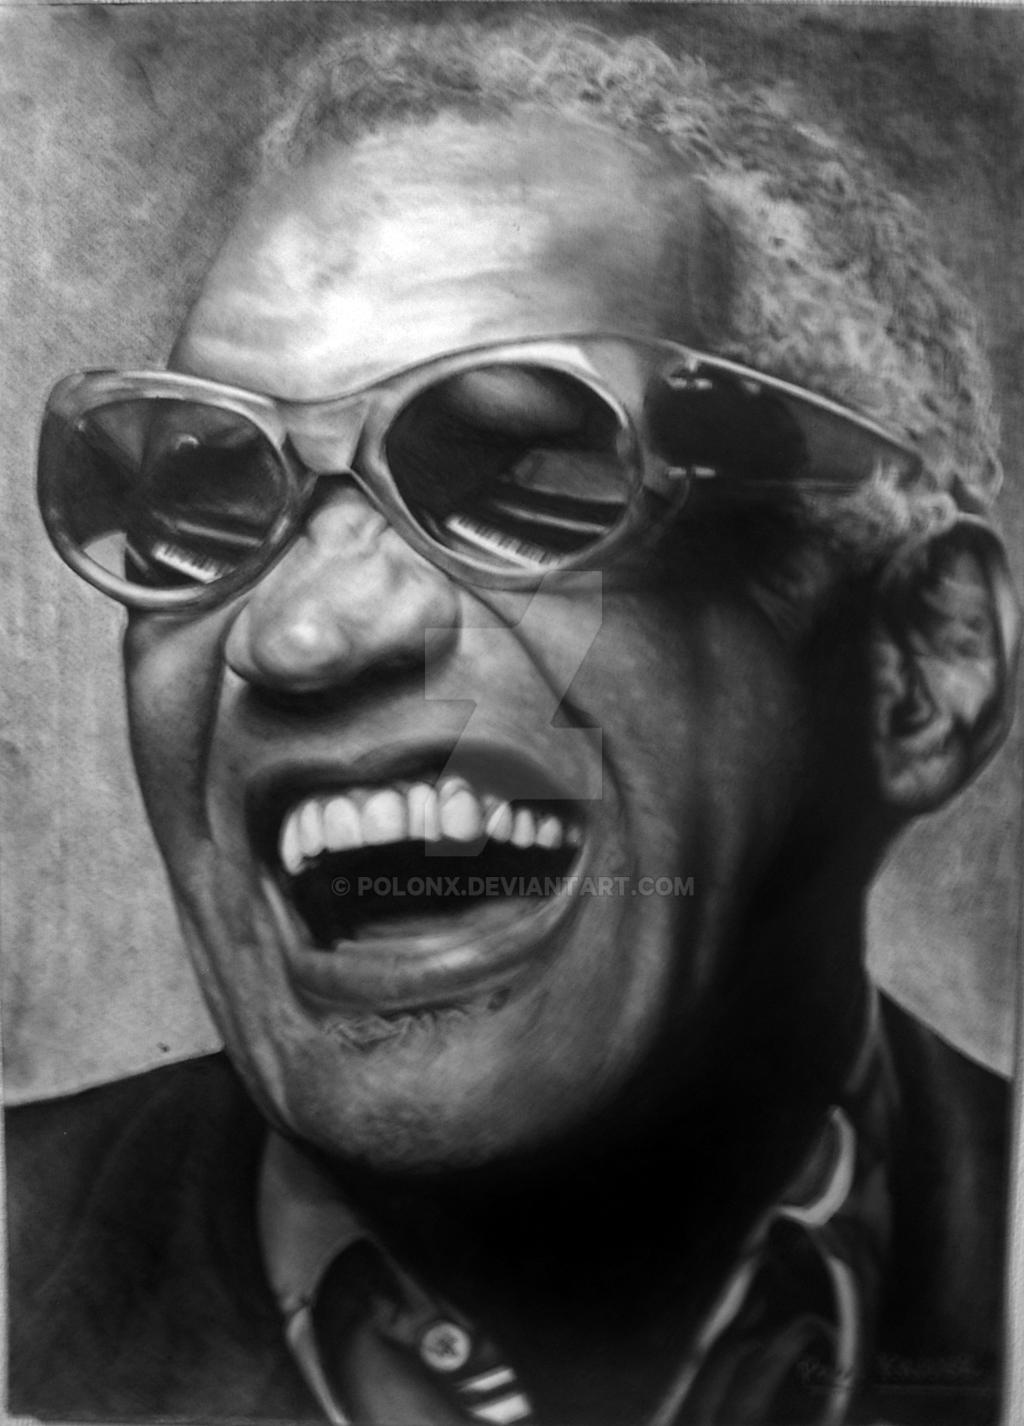 Ray Charles by Polonx on DeviantArt